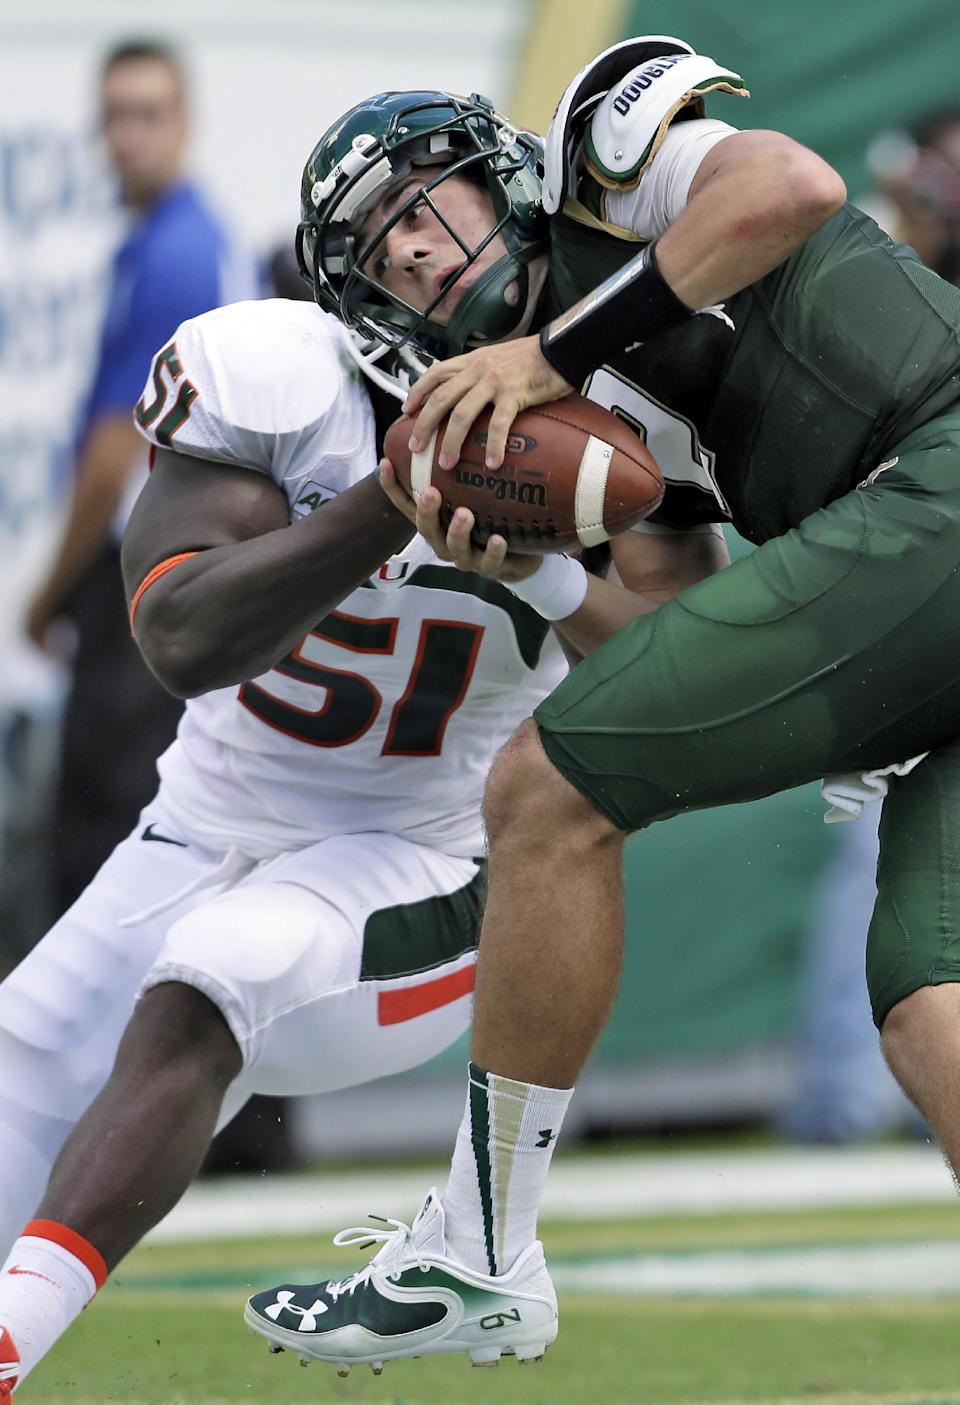 No. 15 Miami routs USF to improve to 4-0